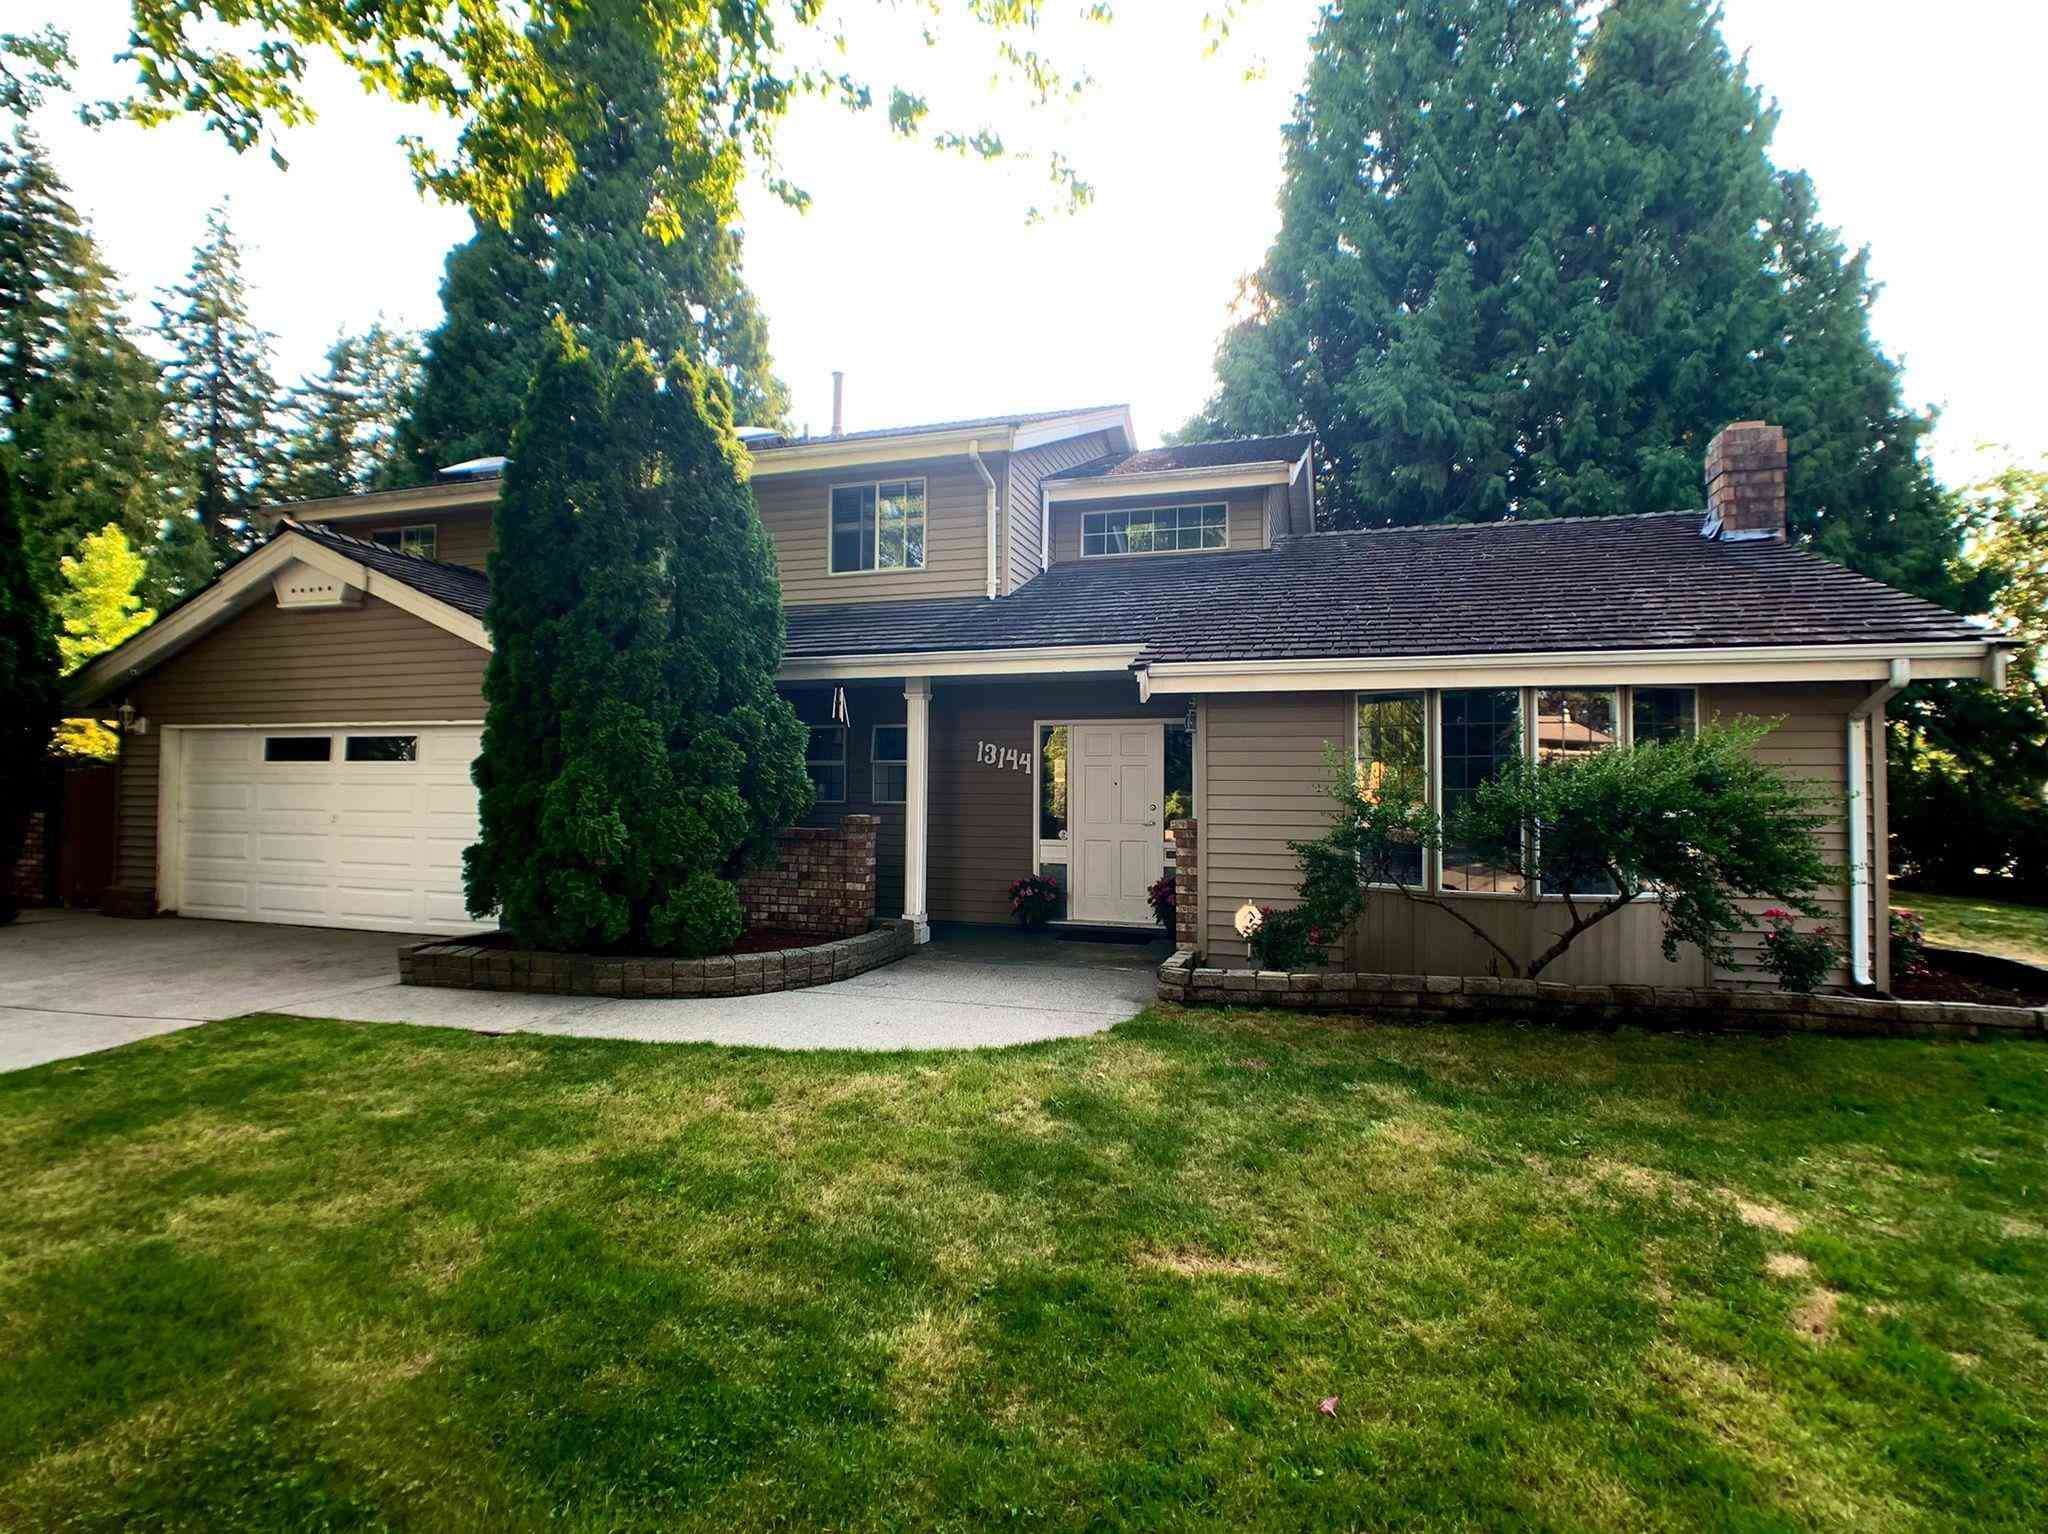 Main Photo: 13144 62A Avenue in Surrey: Panorama Ridge House for sale : MLS®# R2606925